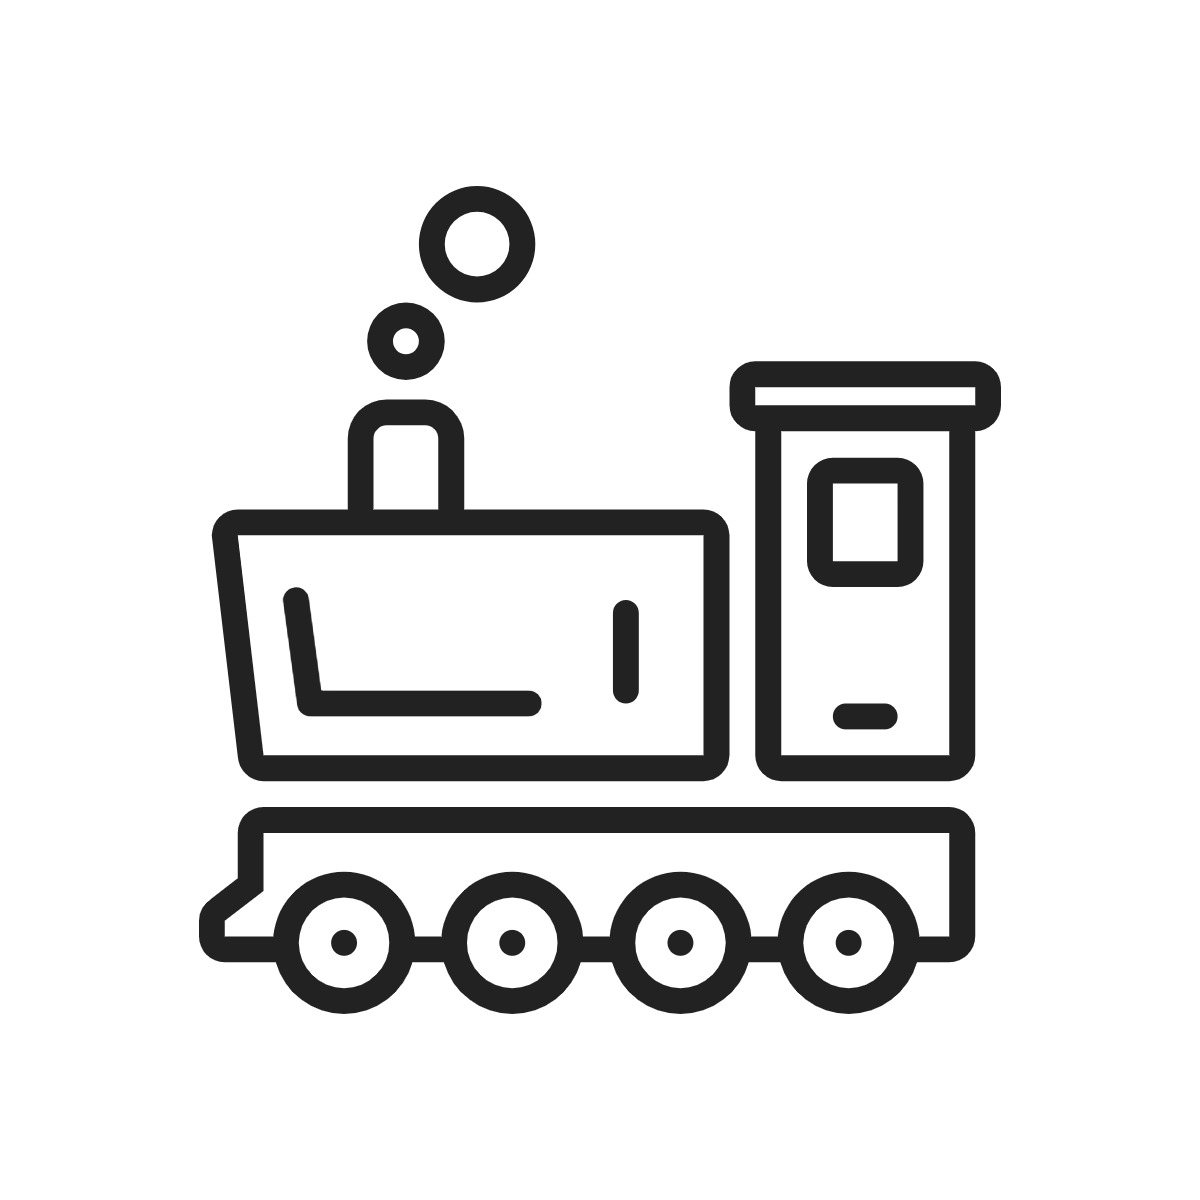 Steamtrain icon